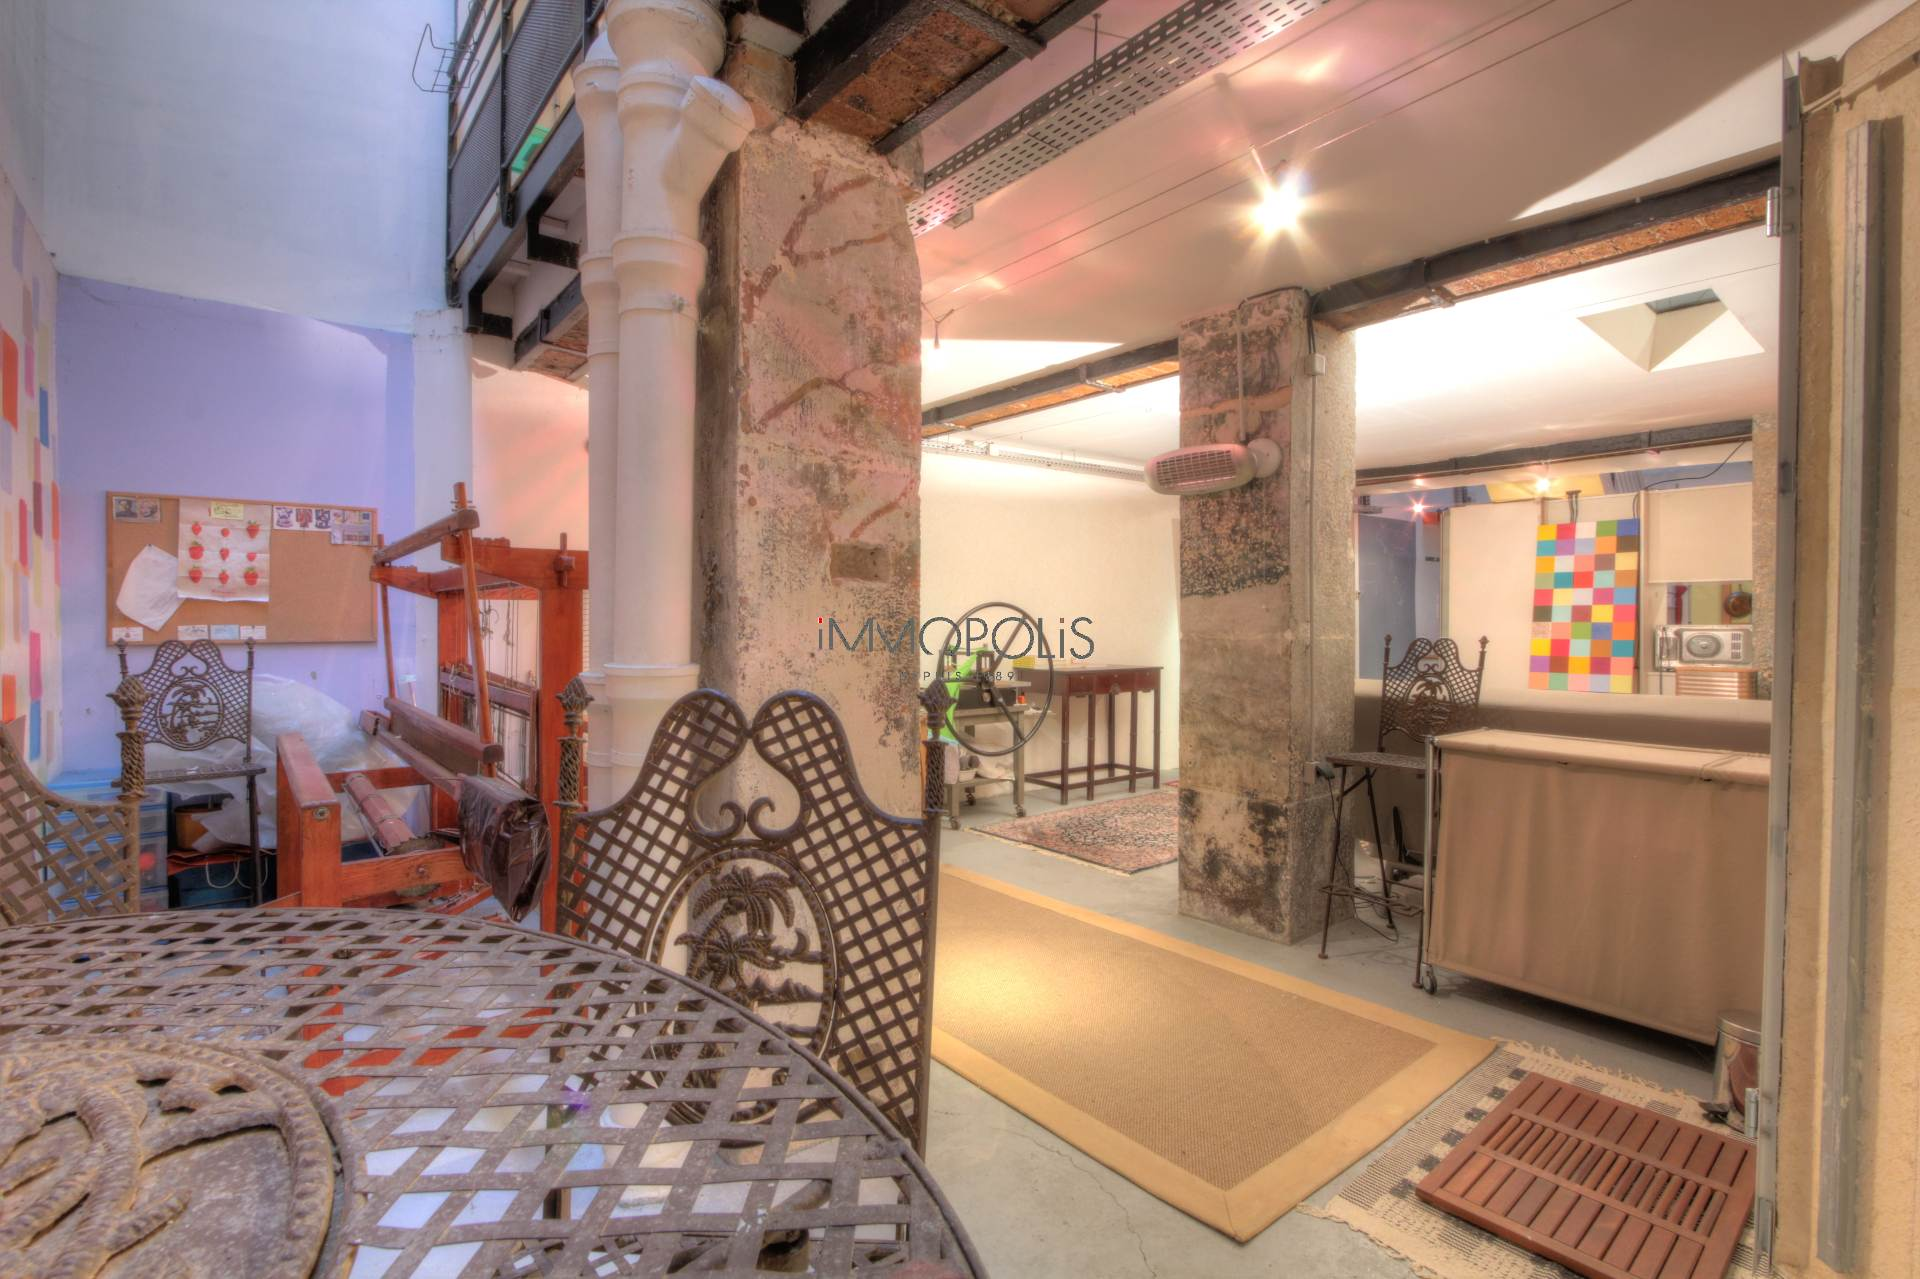 LOFT / ARTIST WORKSHOP totally atypical, in OPEN-SPACE on three levels with TWO CANOPIES overlooking calm courtyard! 7